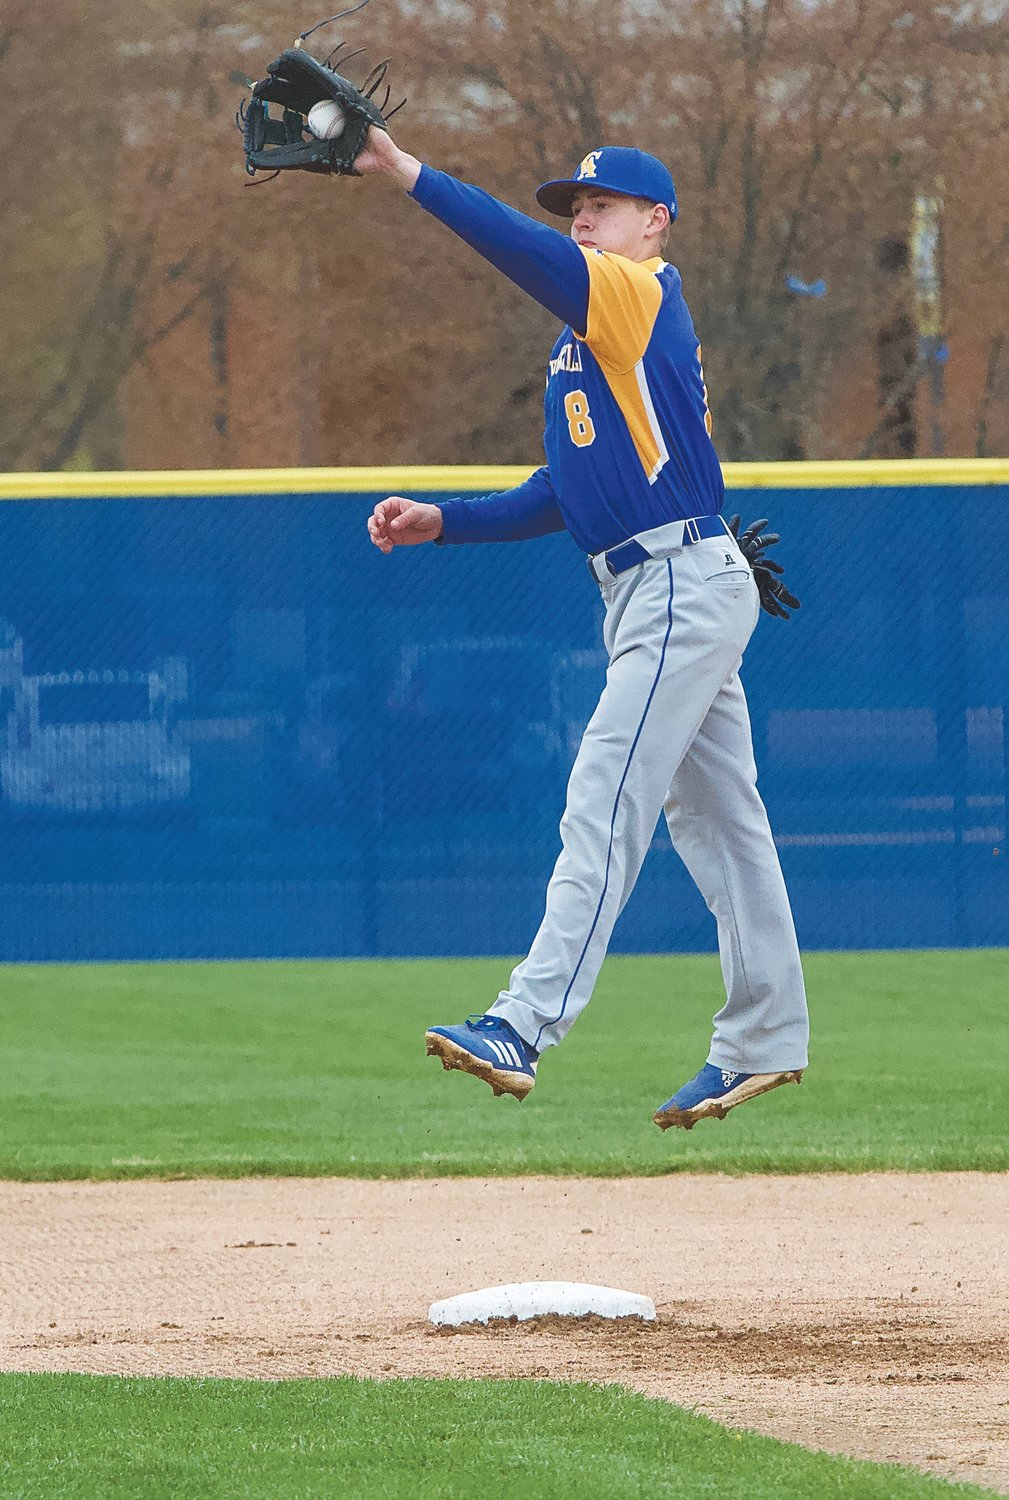 Crawfordsville's Cale McCarty is set to return for his senior baseball season this spring.